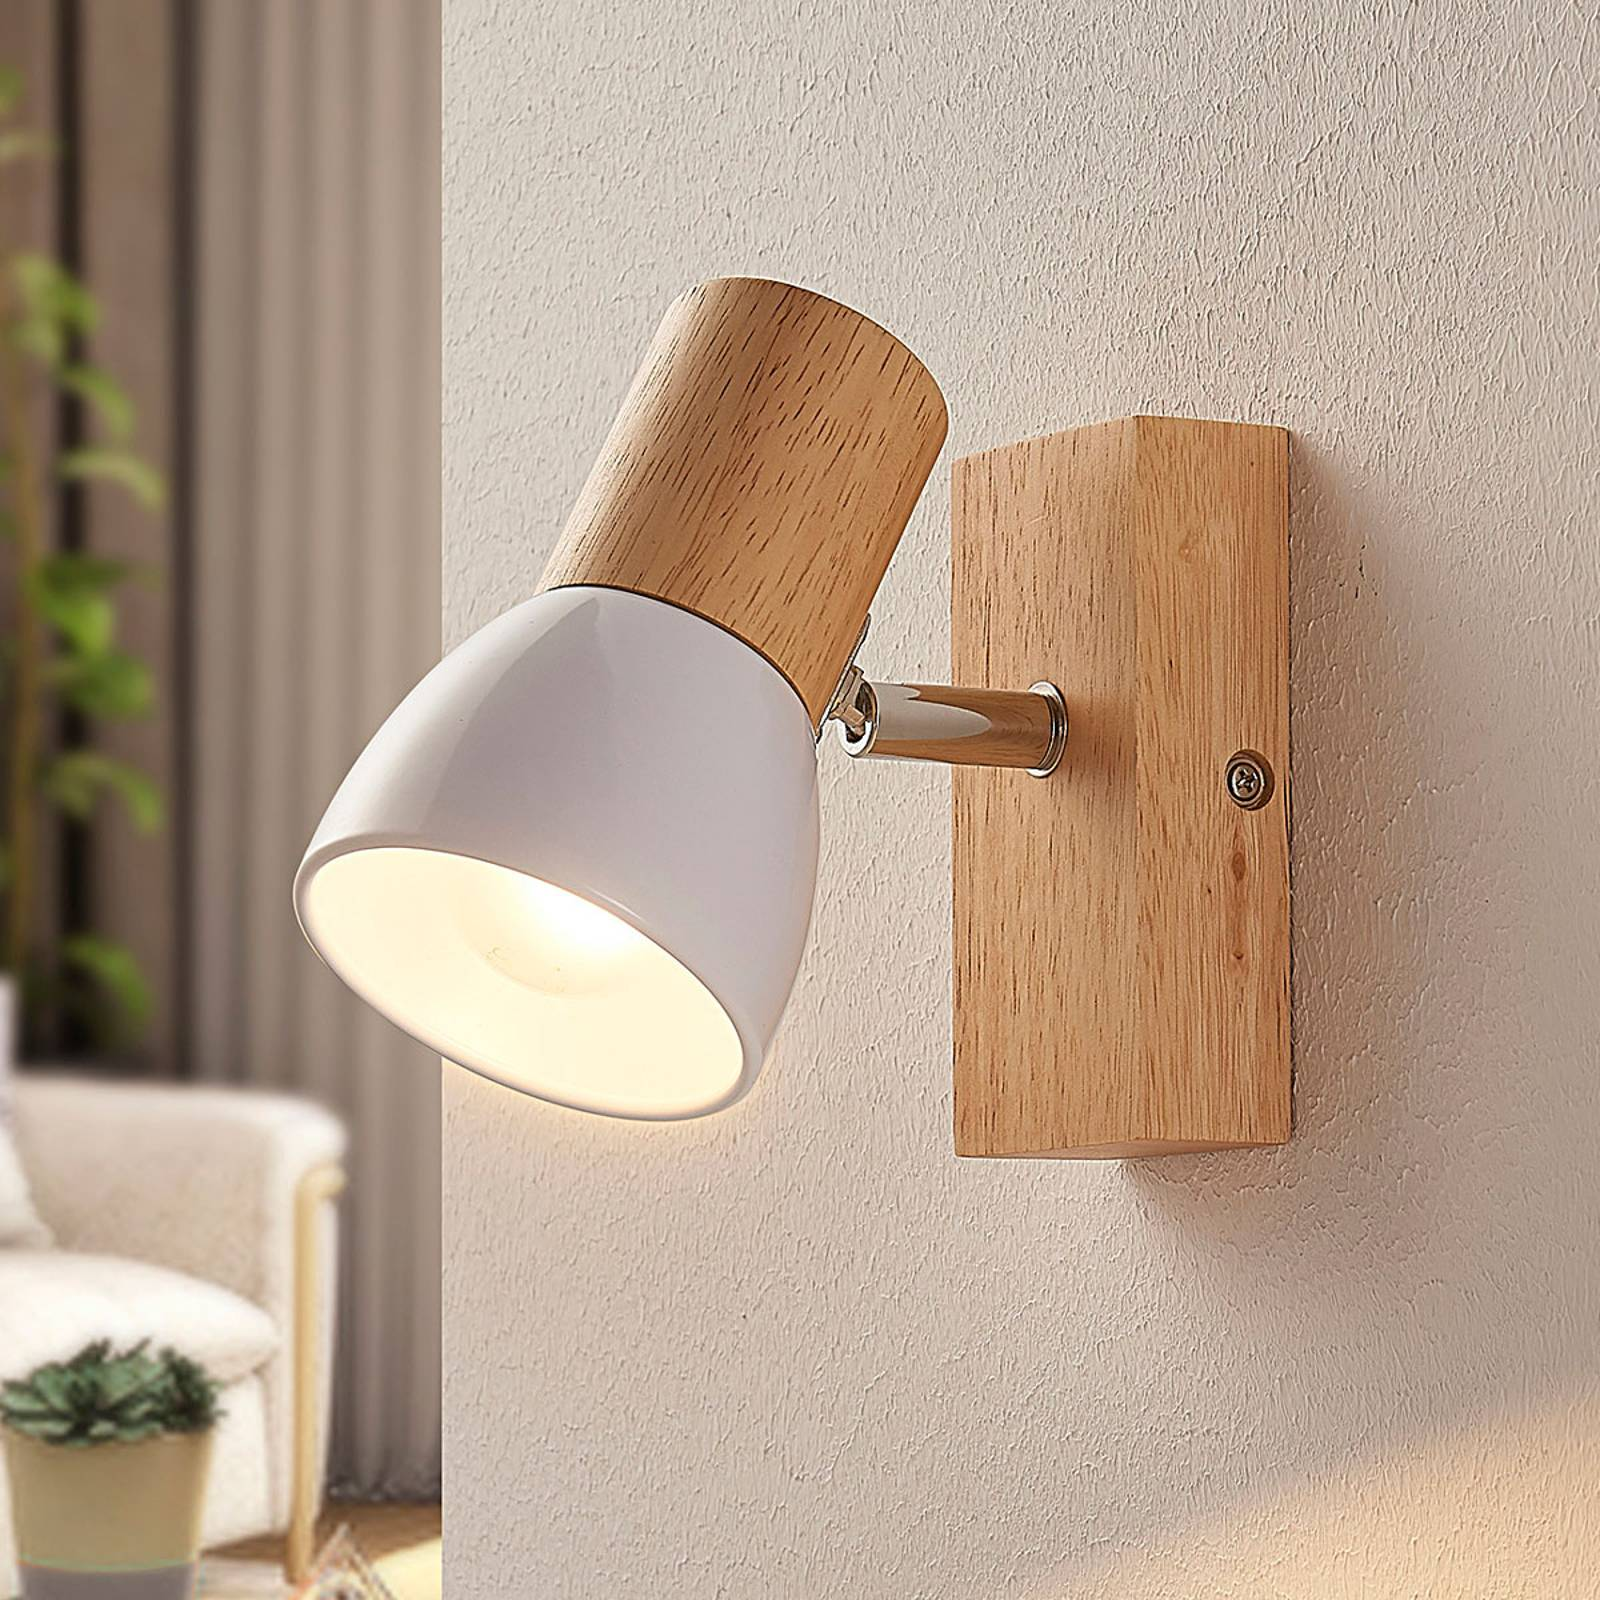 Wooden spotlight Thorin with white metal shade from Lindby